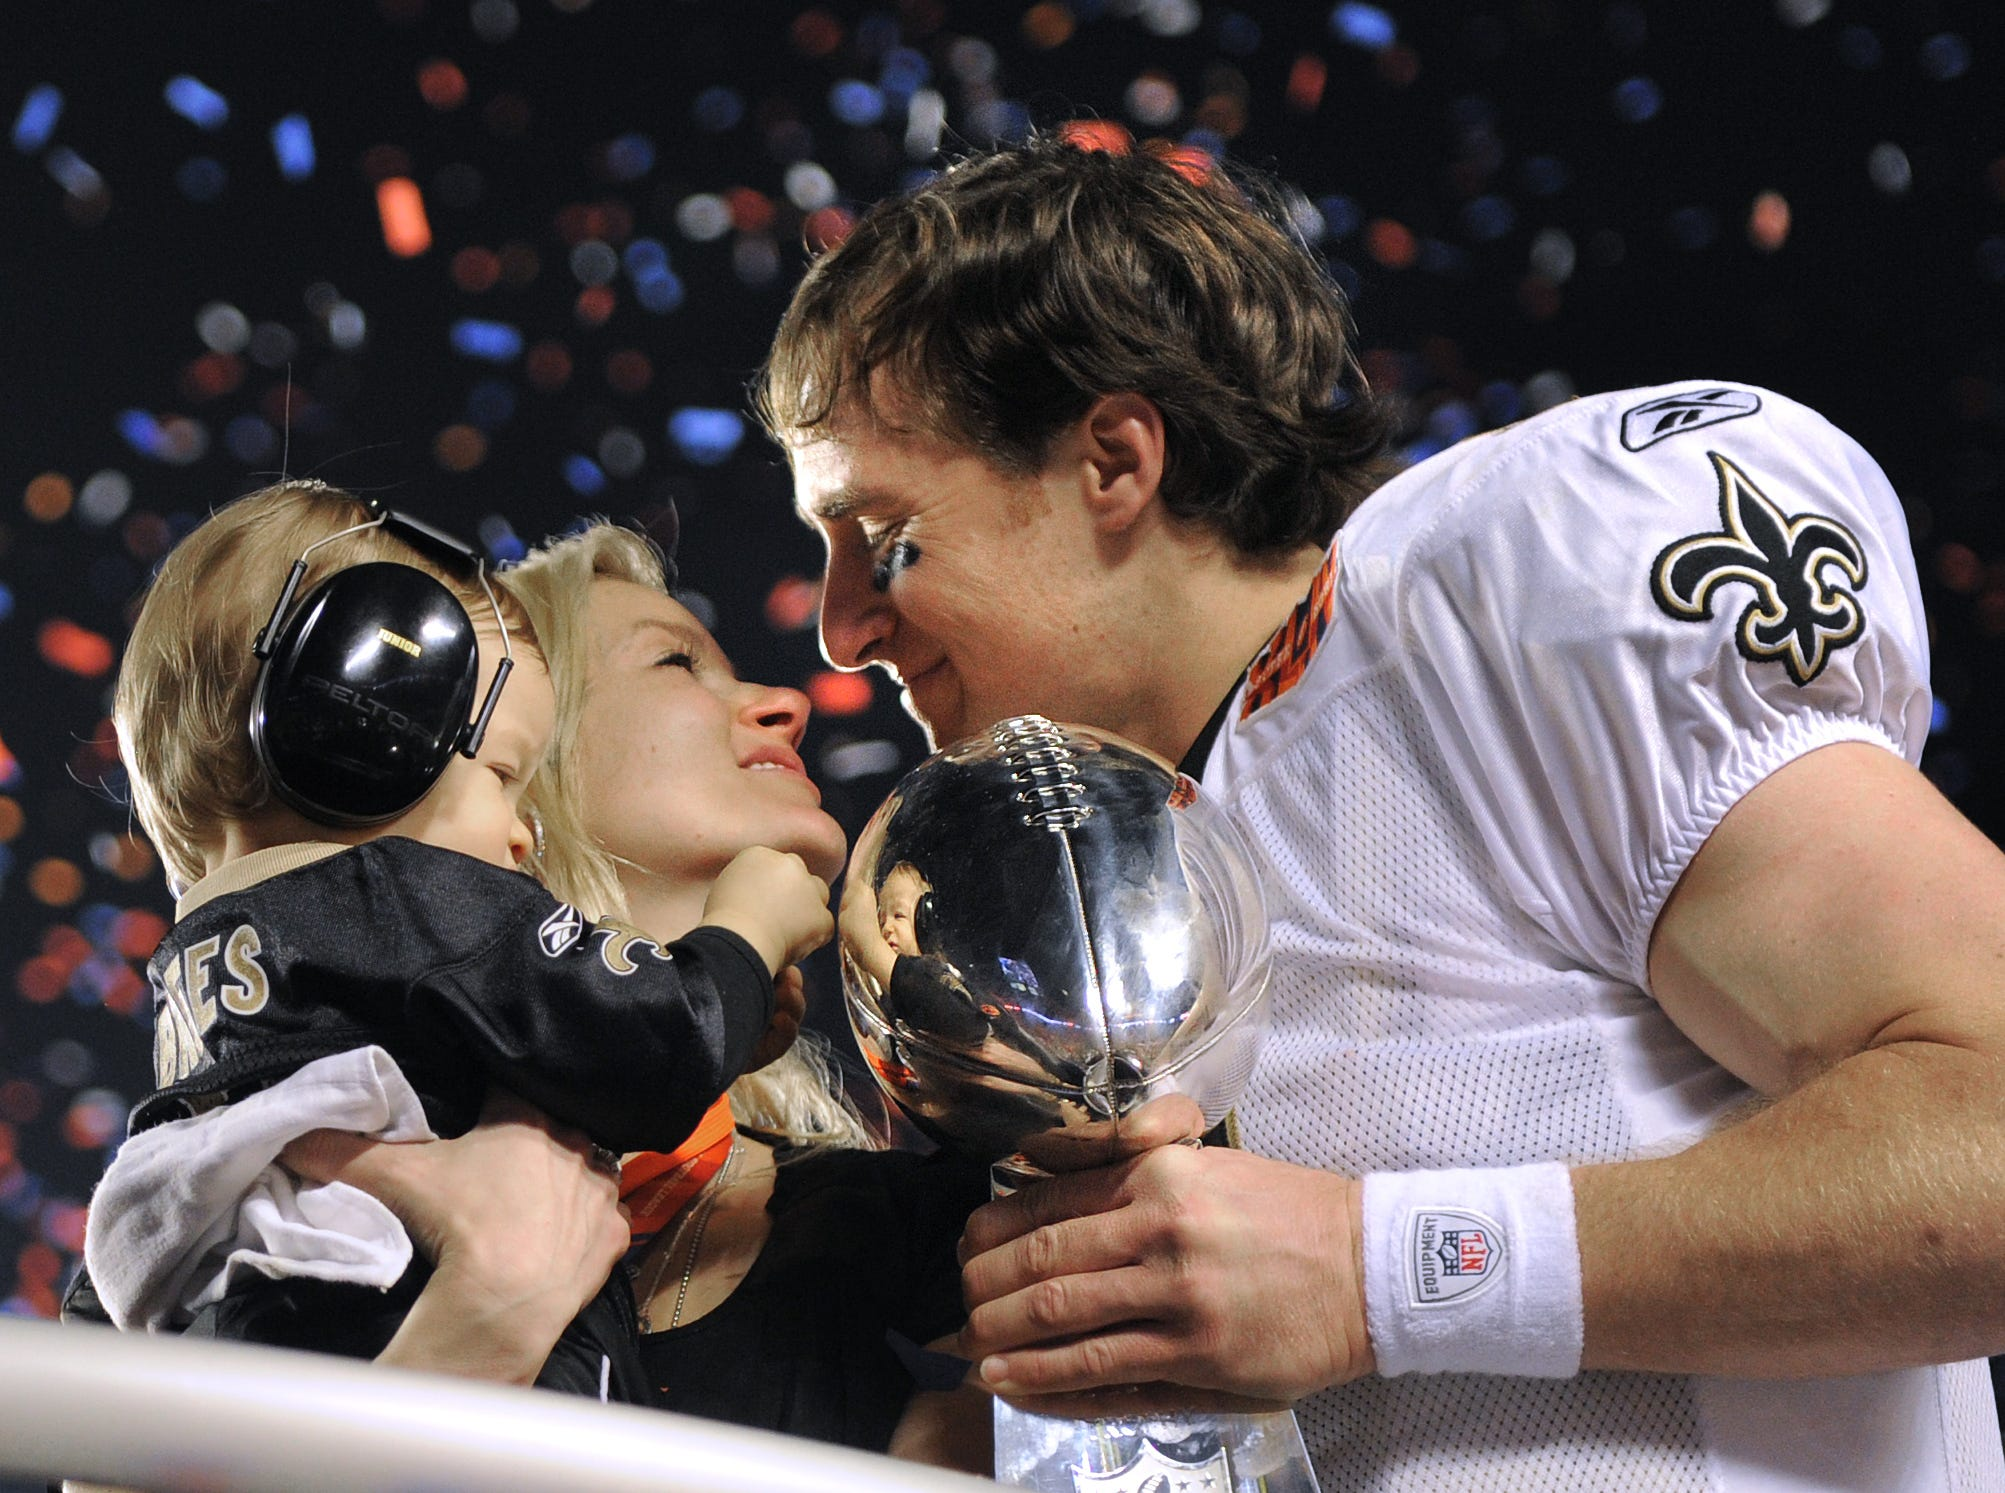 2010: Brees celebrates with wife Brittany and son Baylen after the Super Bowl win.